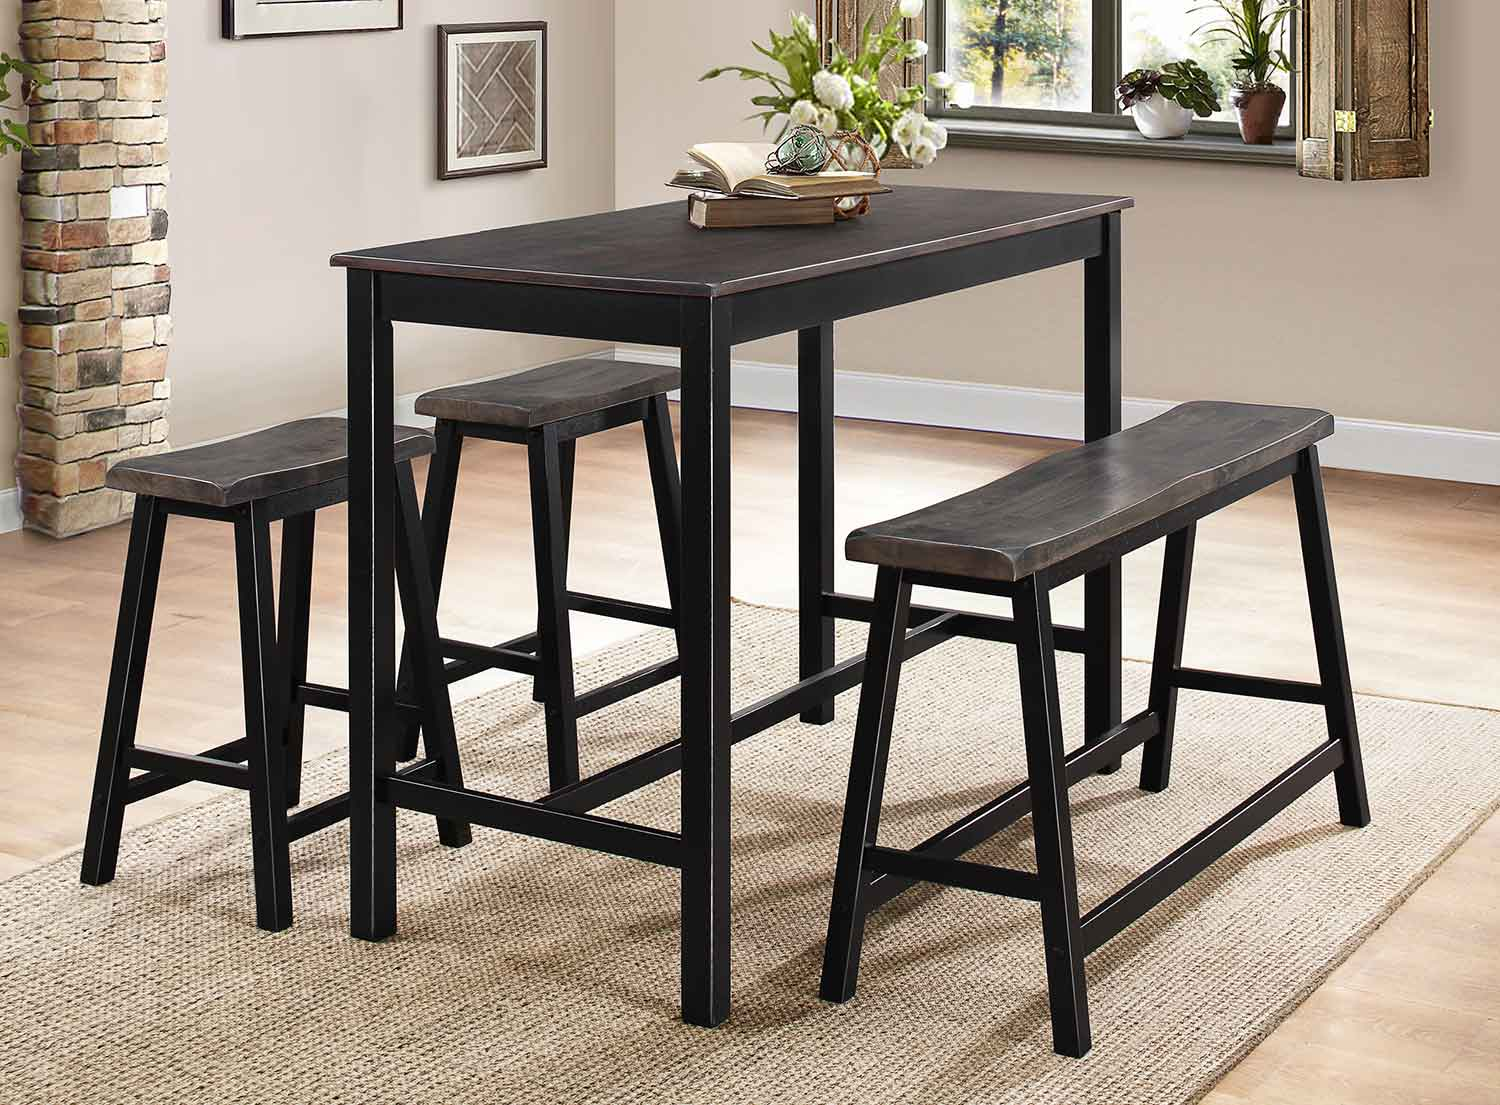 Homelegance Visby 4-Piece Pack Counter Height Set - Brown